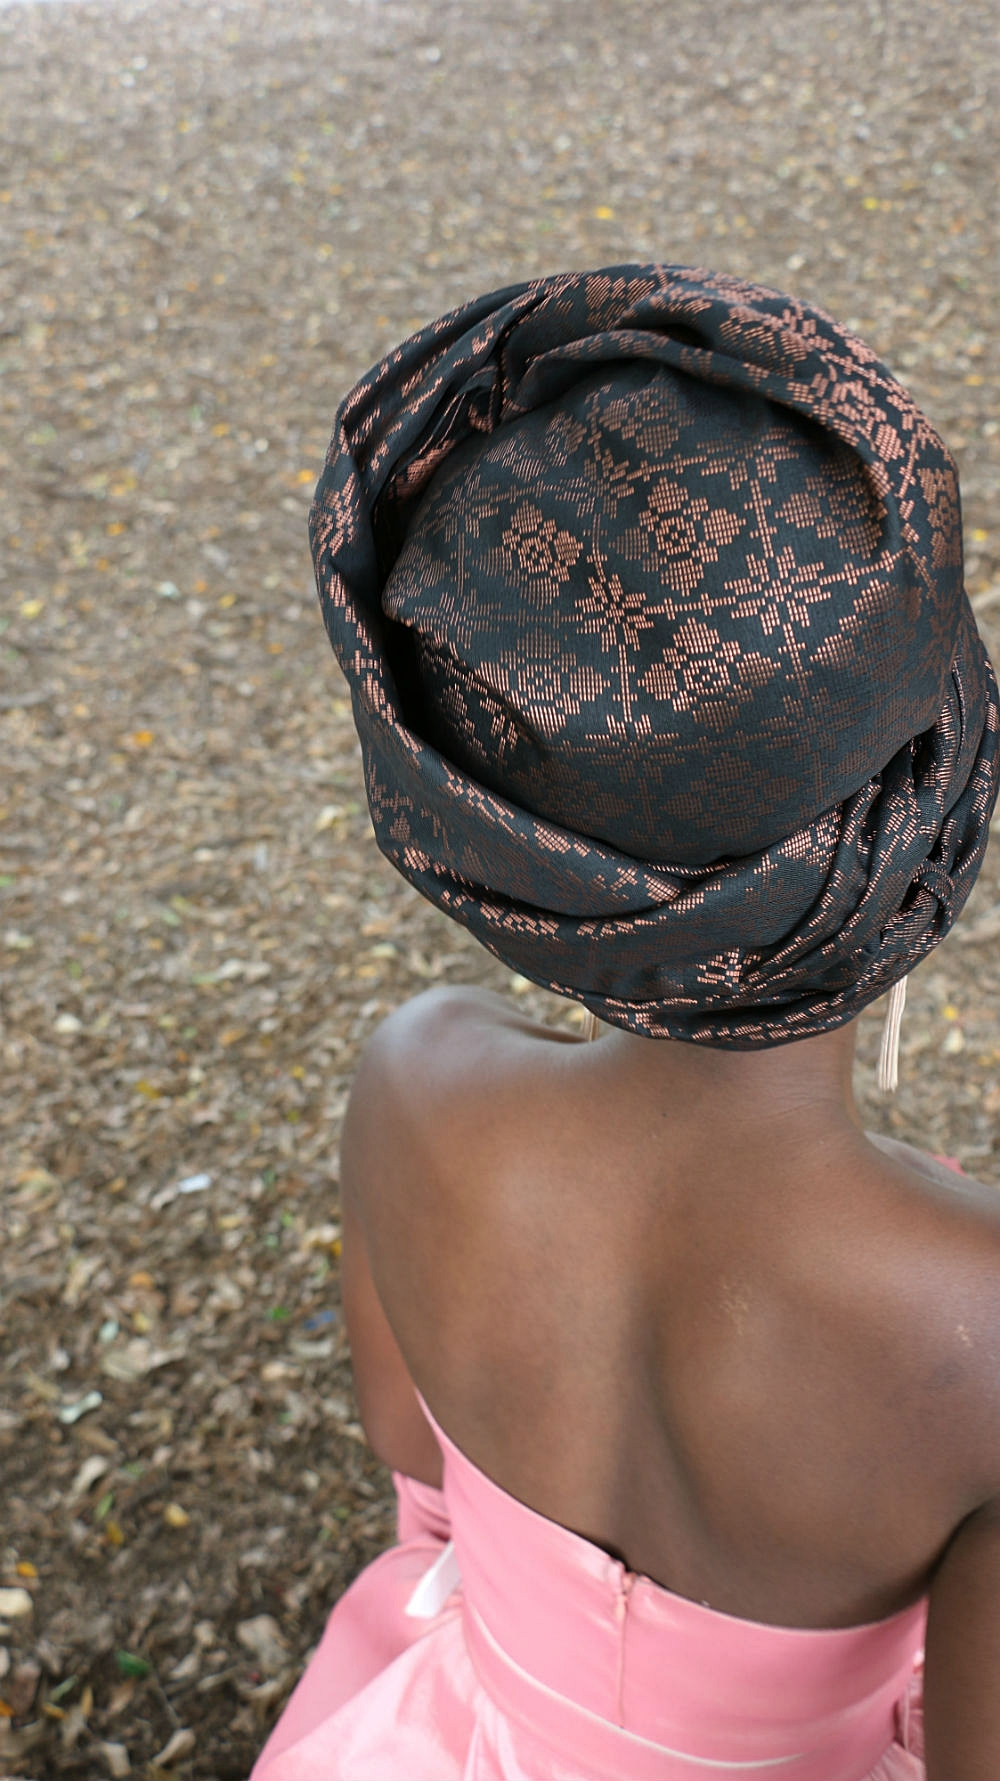 View from the top - intricately woven ROSE GOLD threads on a cotton background - we opted for the TURBAN headwrap styling technique.